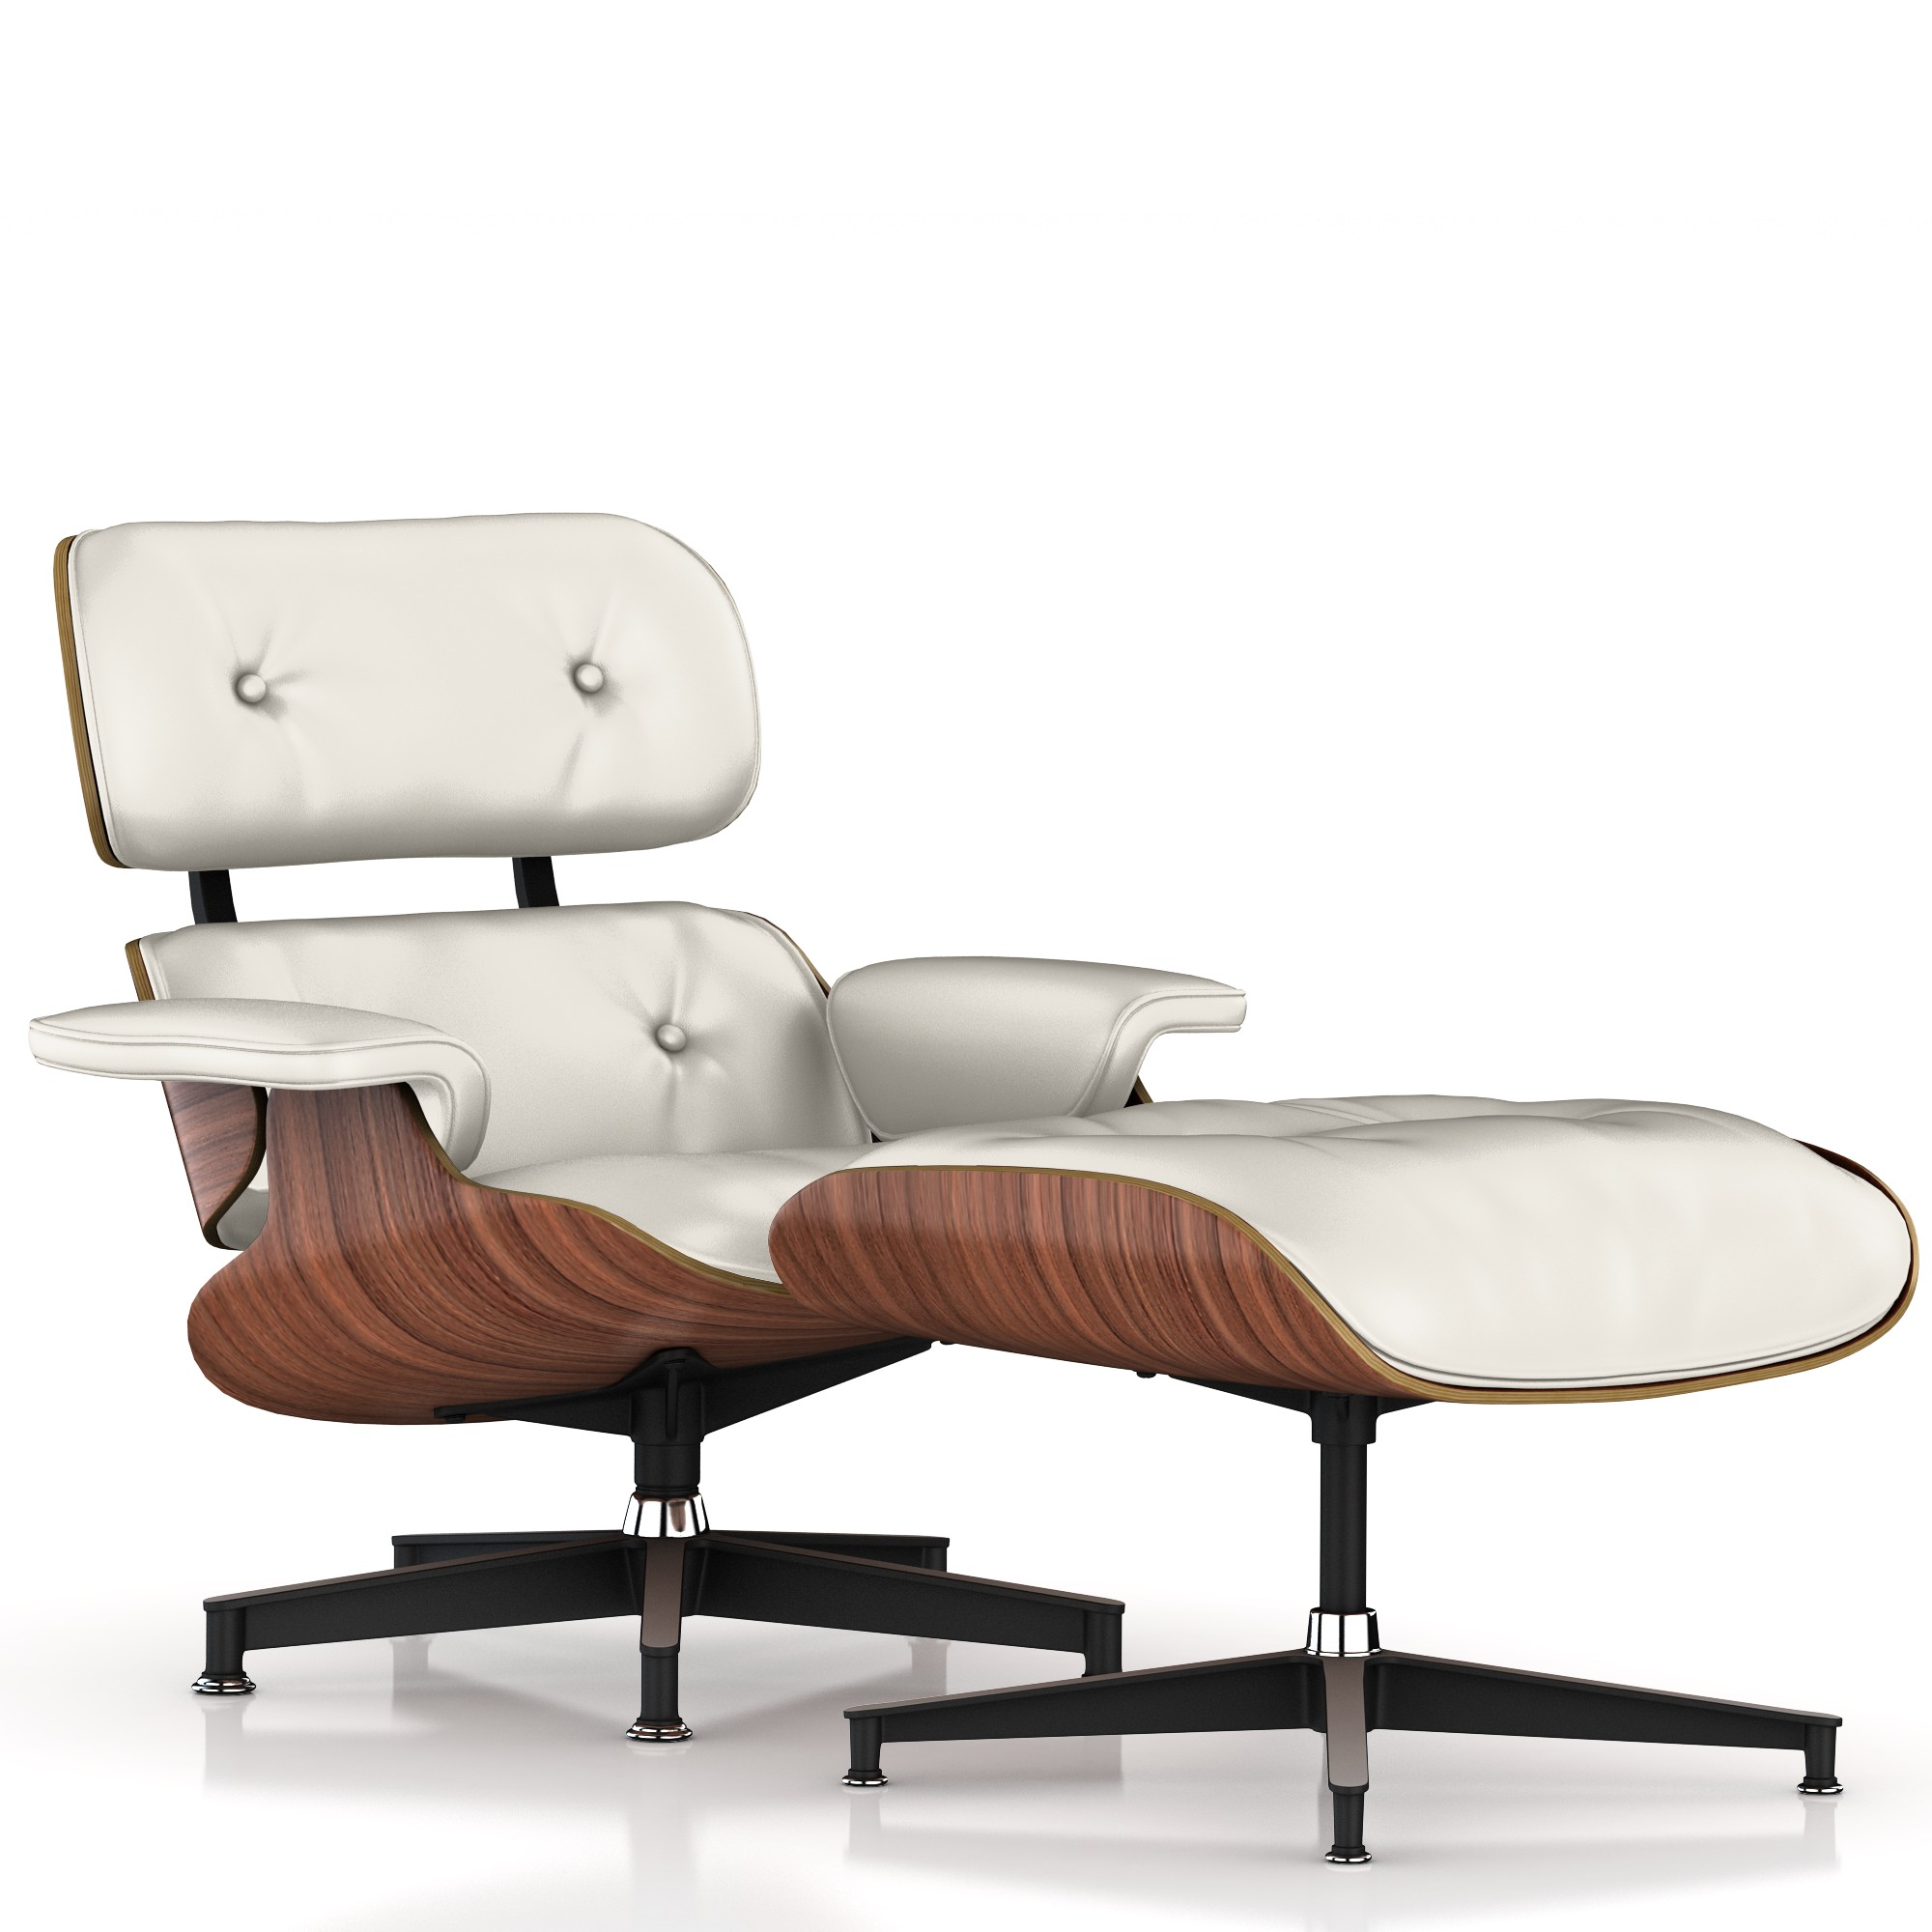 Picture of Eames Lounge Chair and Ottoman by Herman Miller